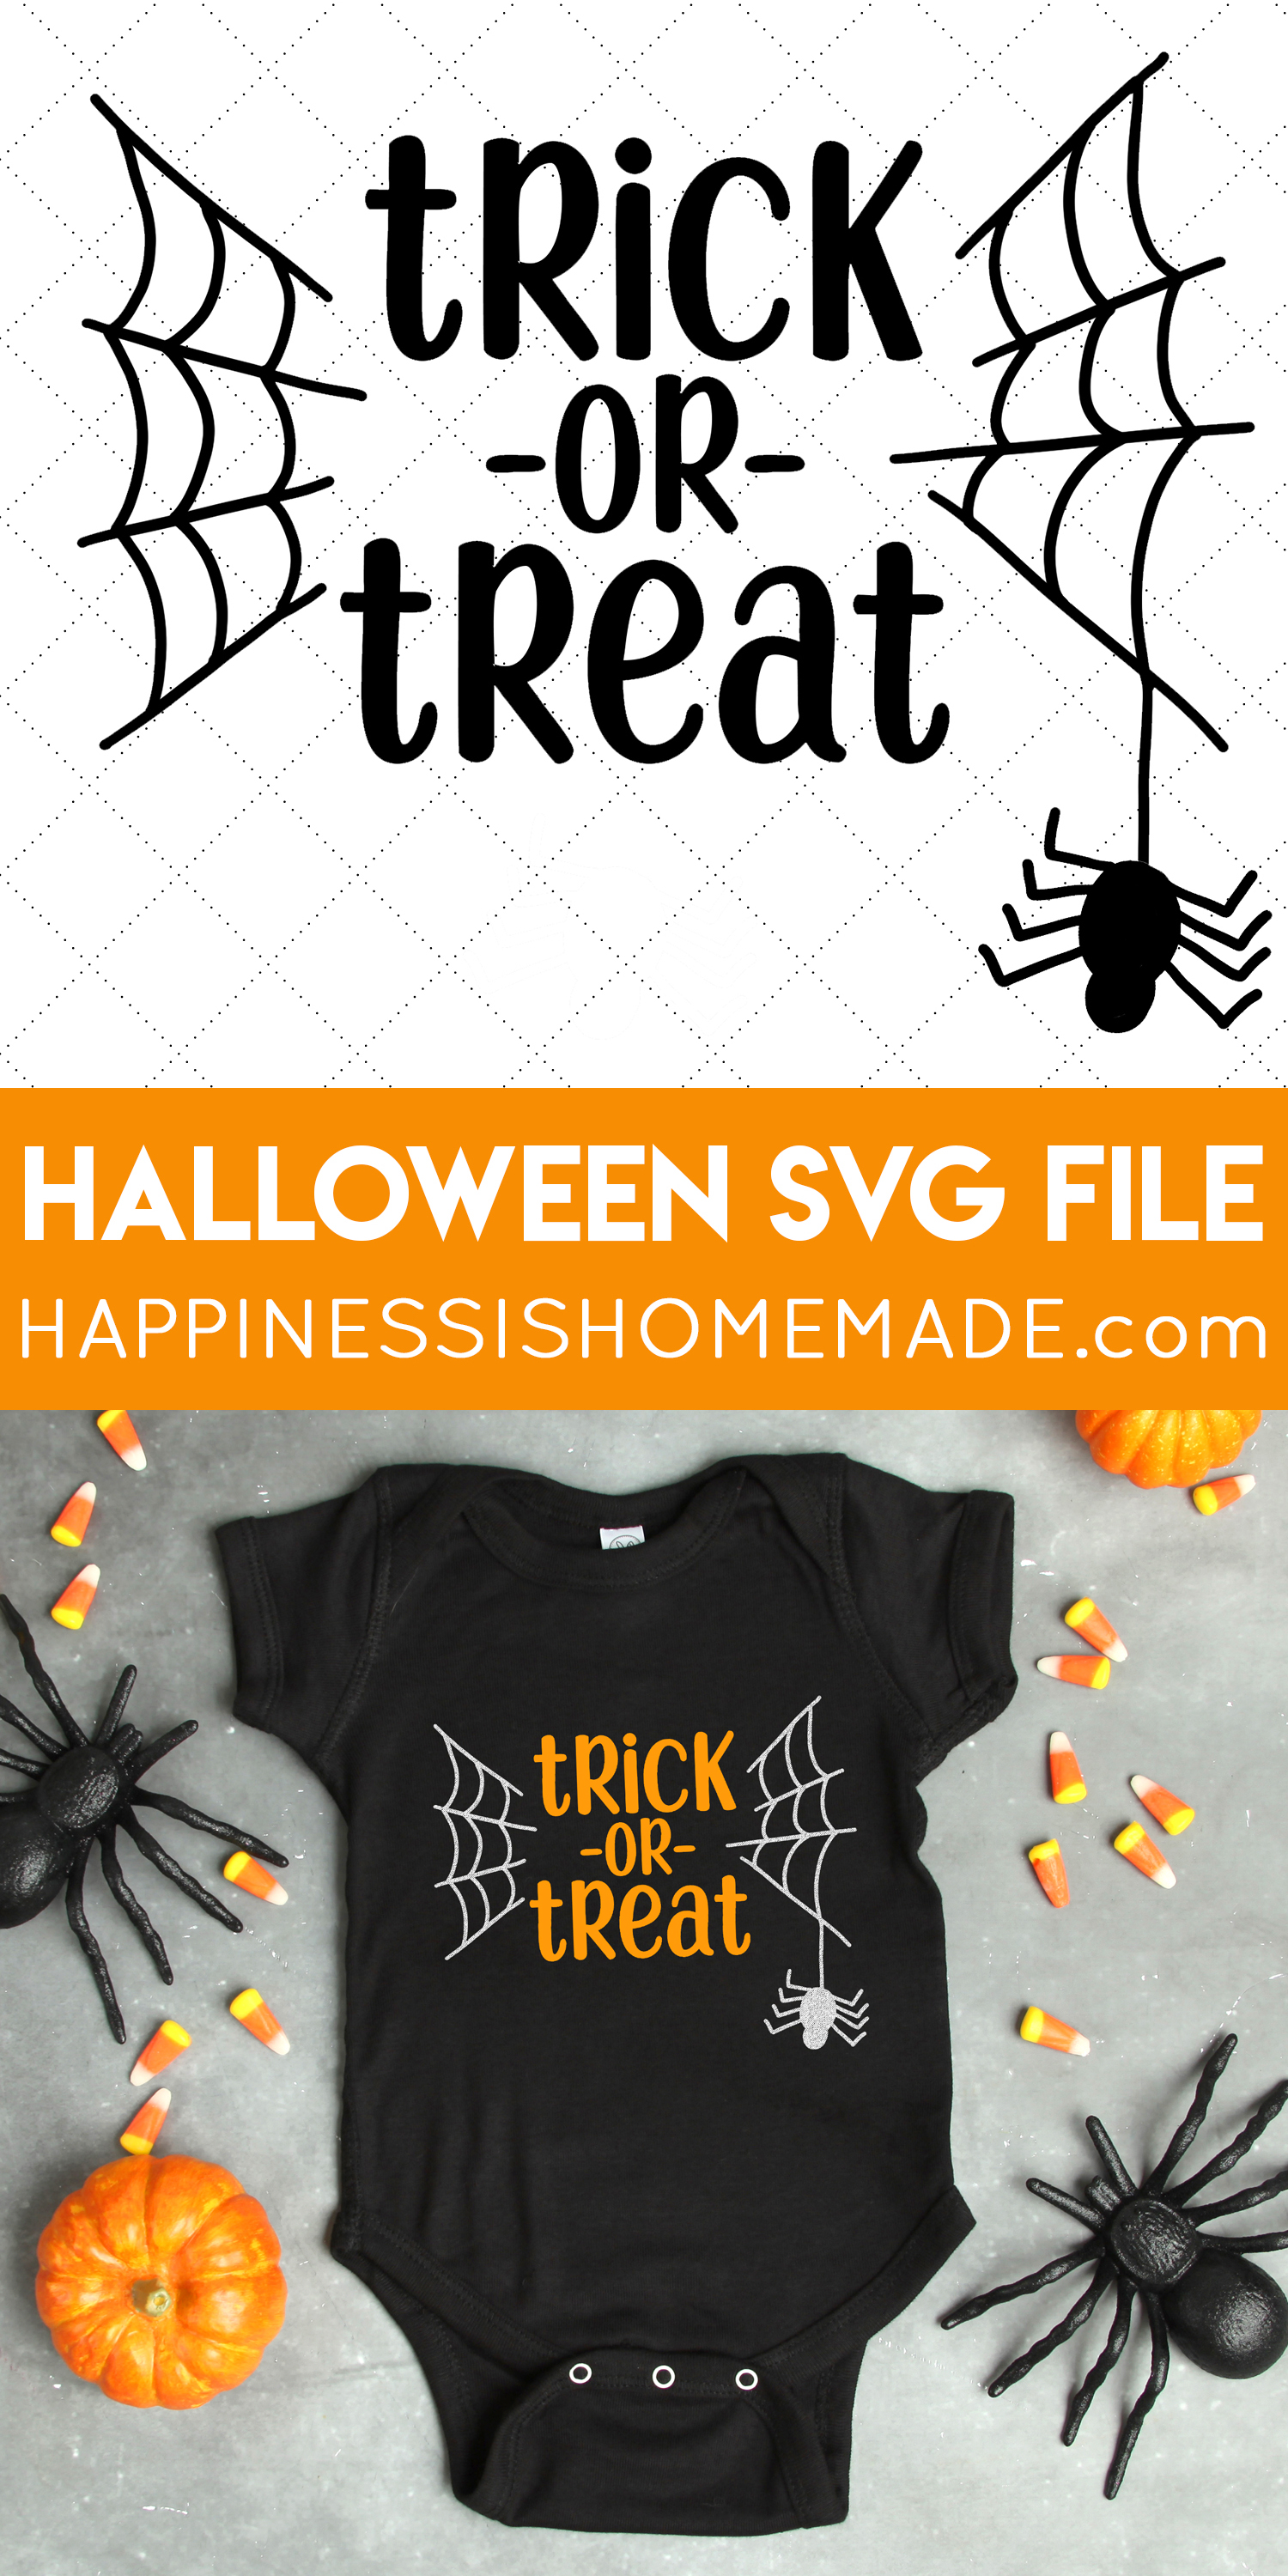 Halloween Friends Shirt Svg.Trick Or Treat Halloween Svg File Happiness Is Homemade